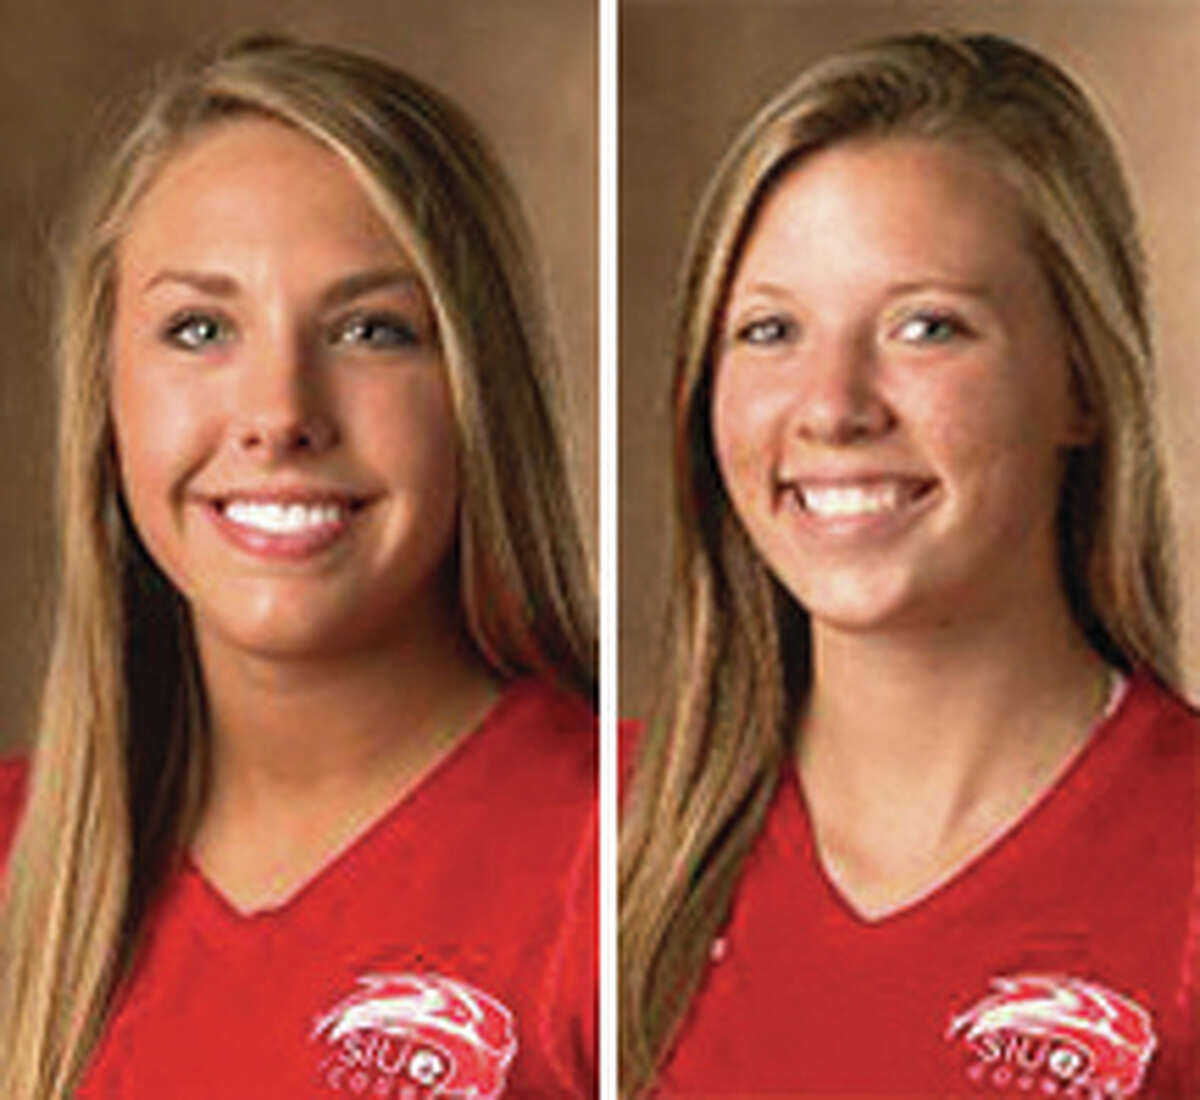 SIUE's Mallory Mangun (left) moved into the top 10 for career digs with the Cougars, while Carley Ramich had a career-high 10 blocks in Saturday's OVC win at Southeast Missouri.